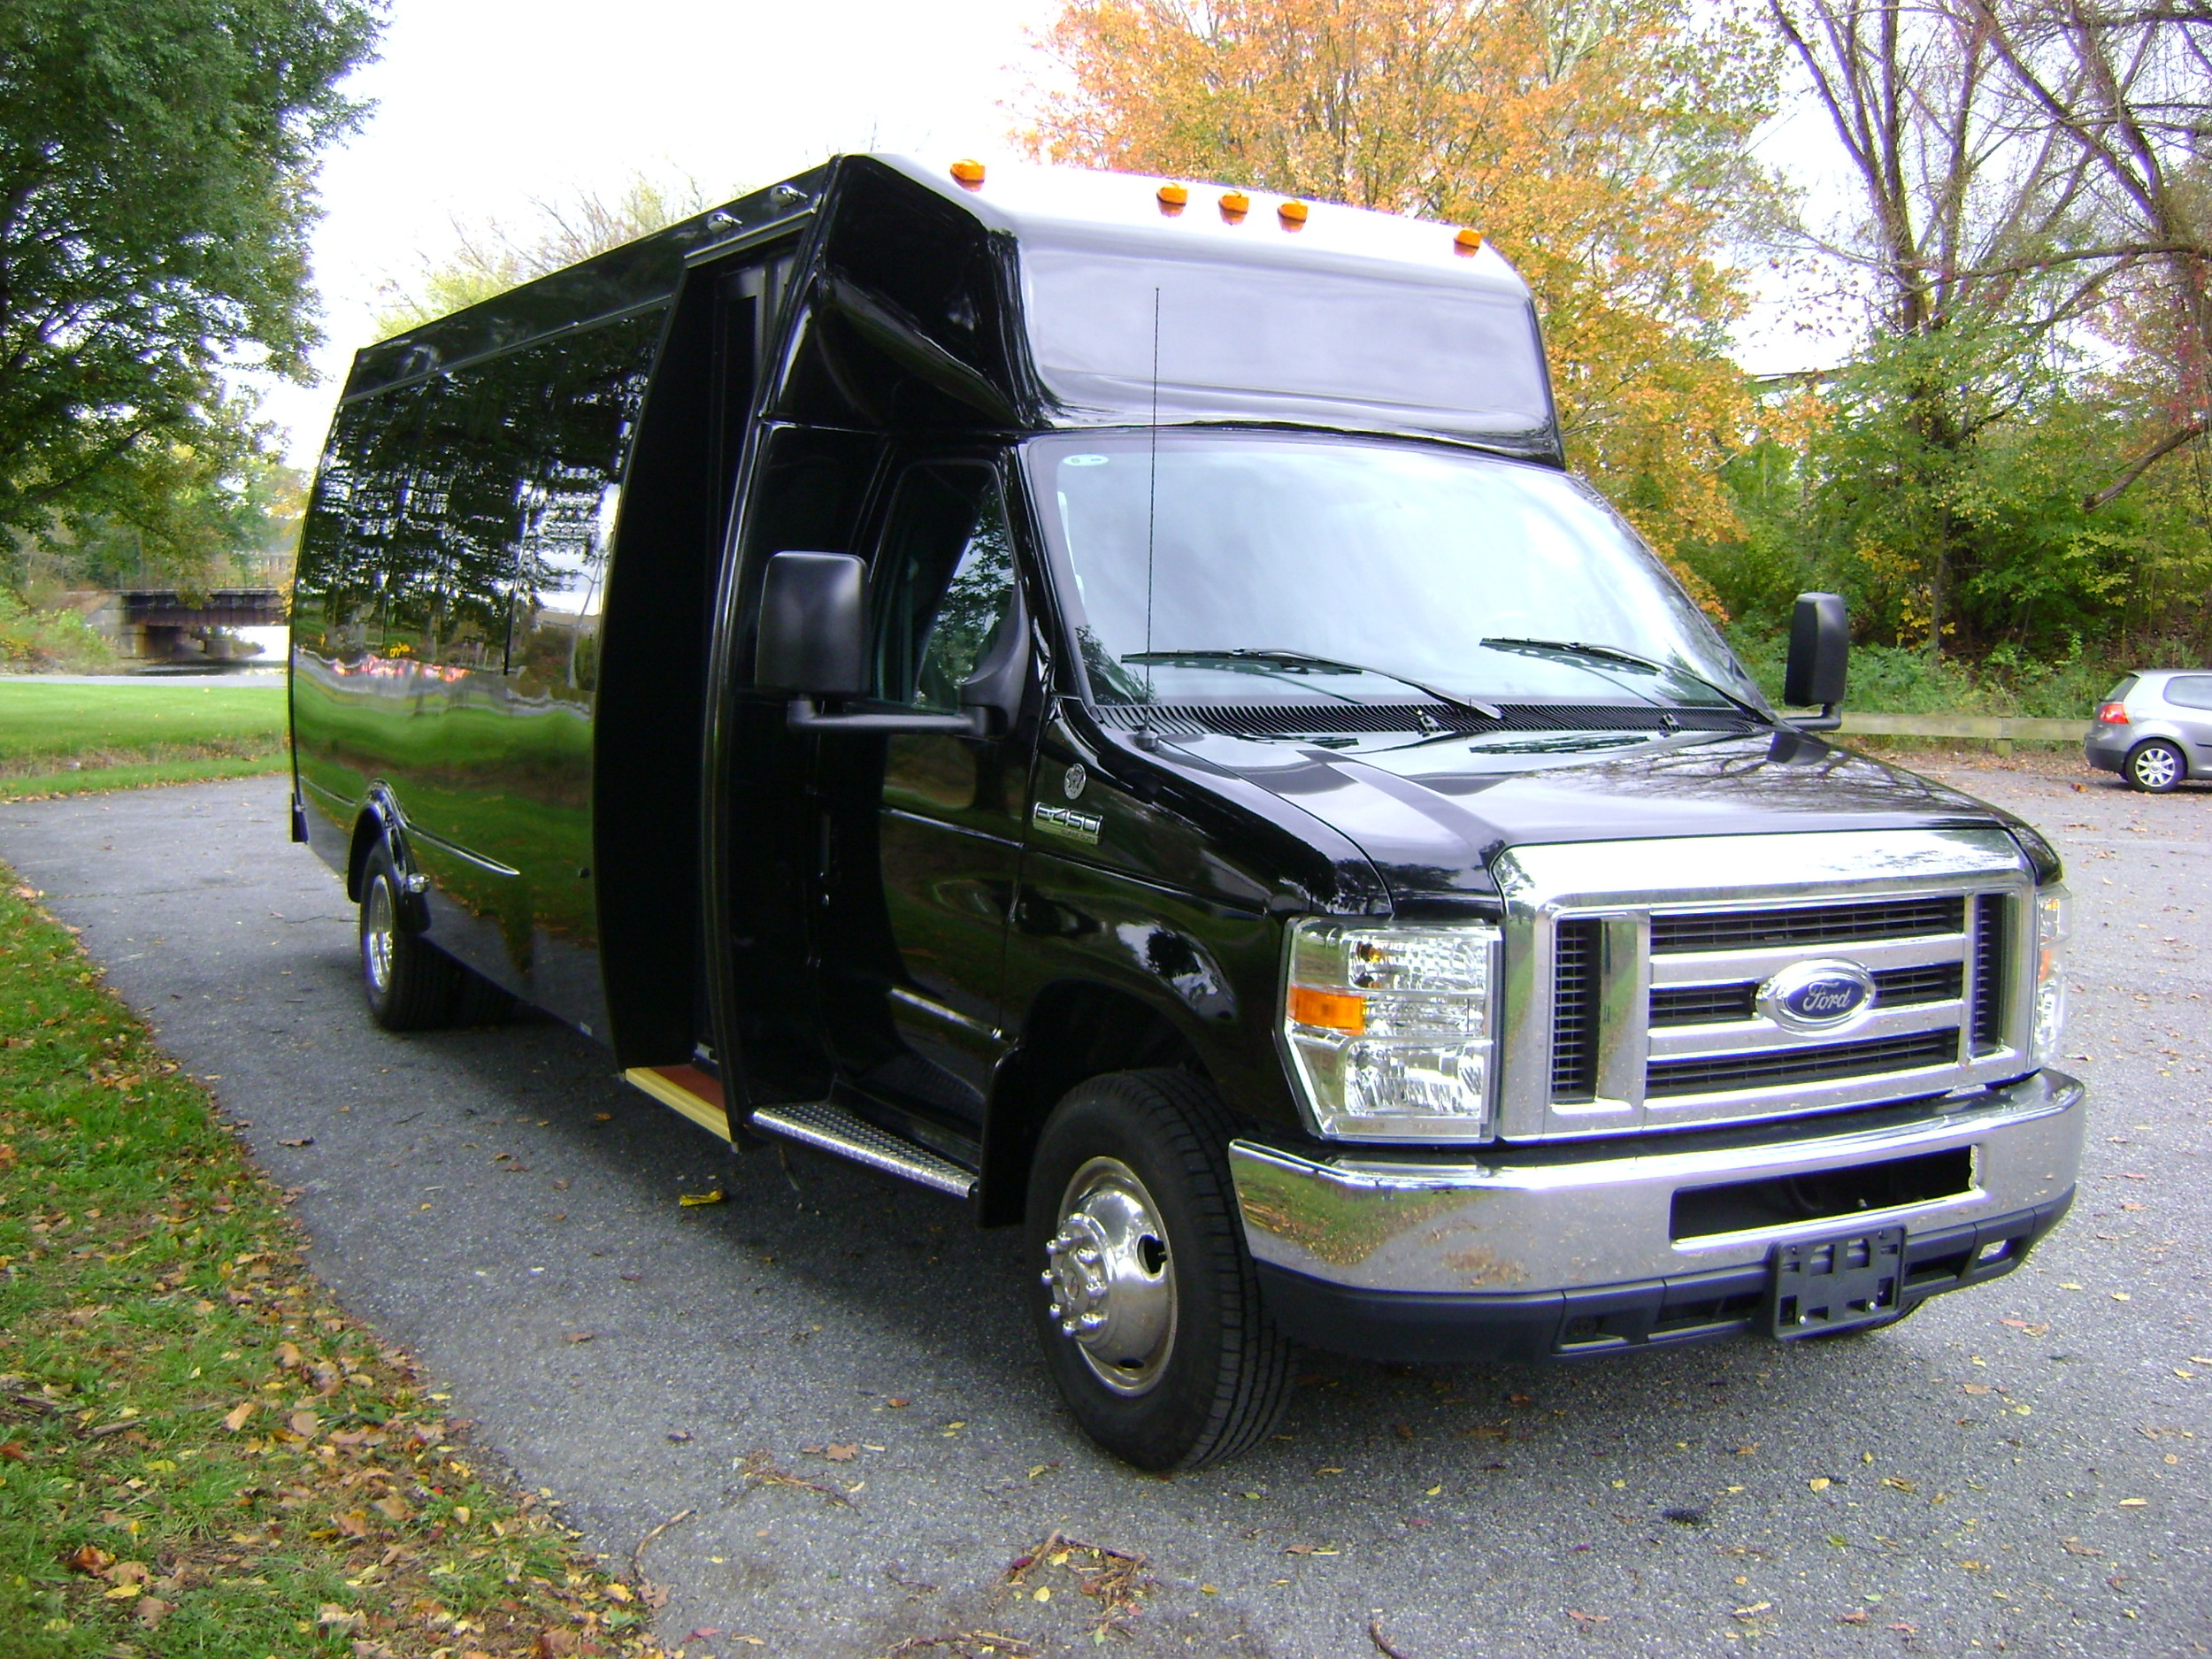 e450-16-pax-with-tablesANGLEFROMFRONT.jpg